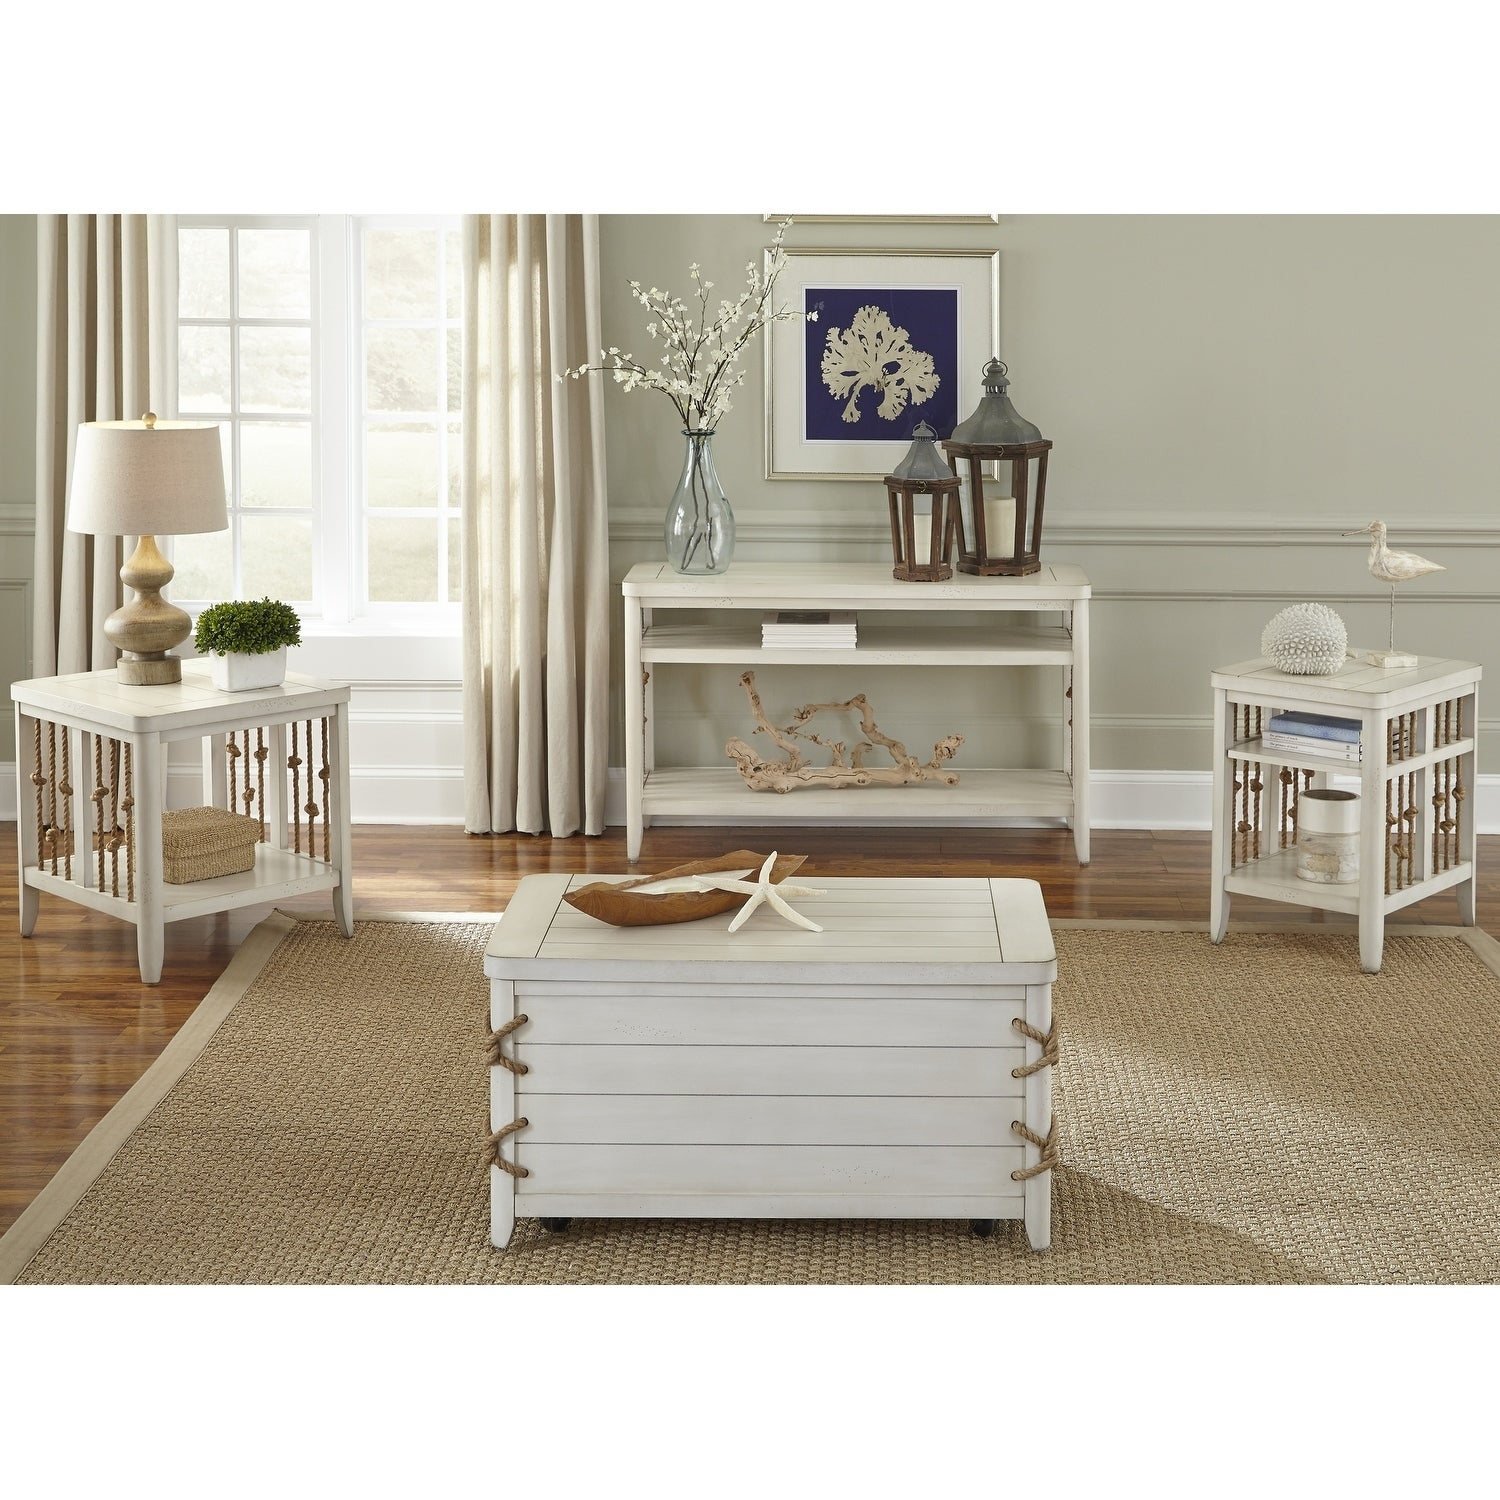 Shop Dockside II White Storage Trunk   Free Shipping Today   Overstock.com    10562546